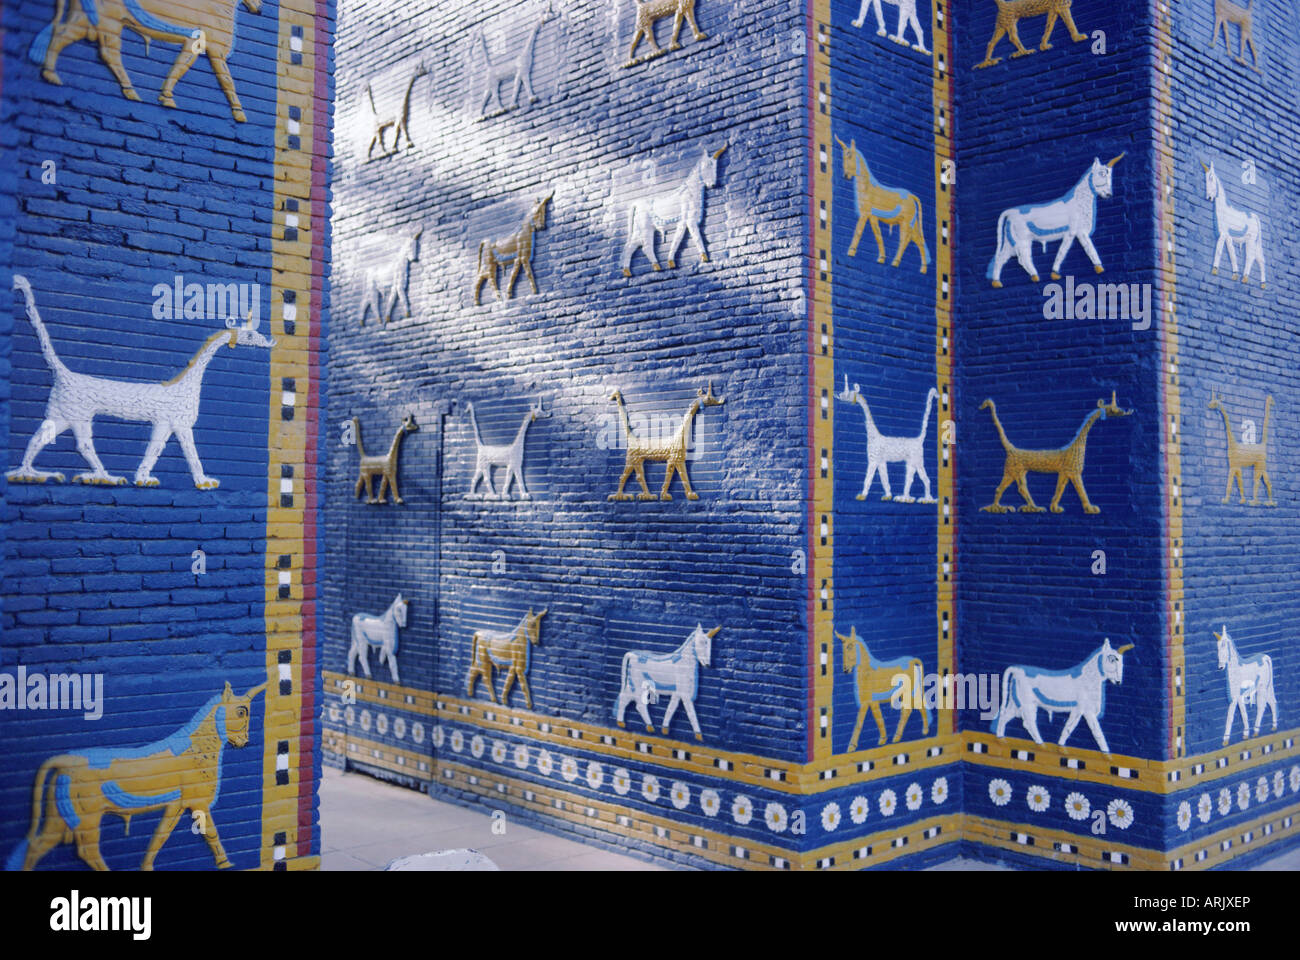 The reconstructed Ishtar Gate, Babylon, Iraq, Middle East Stock Photo